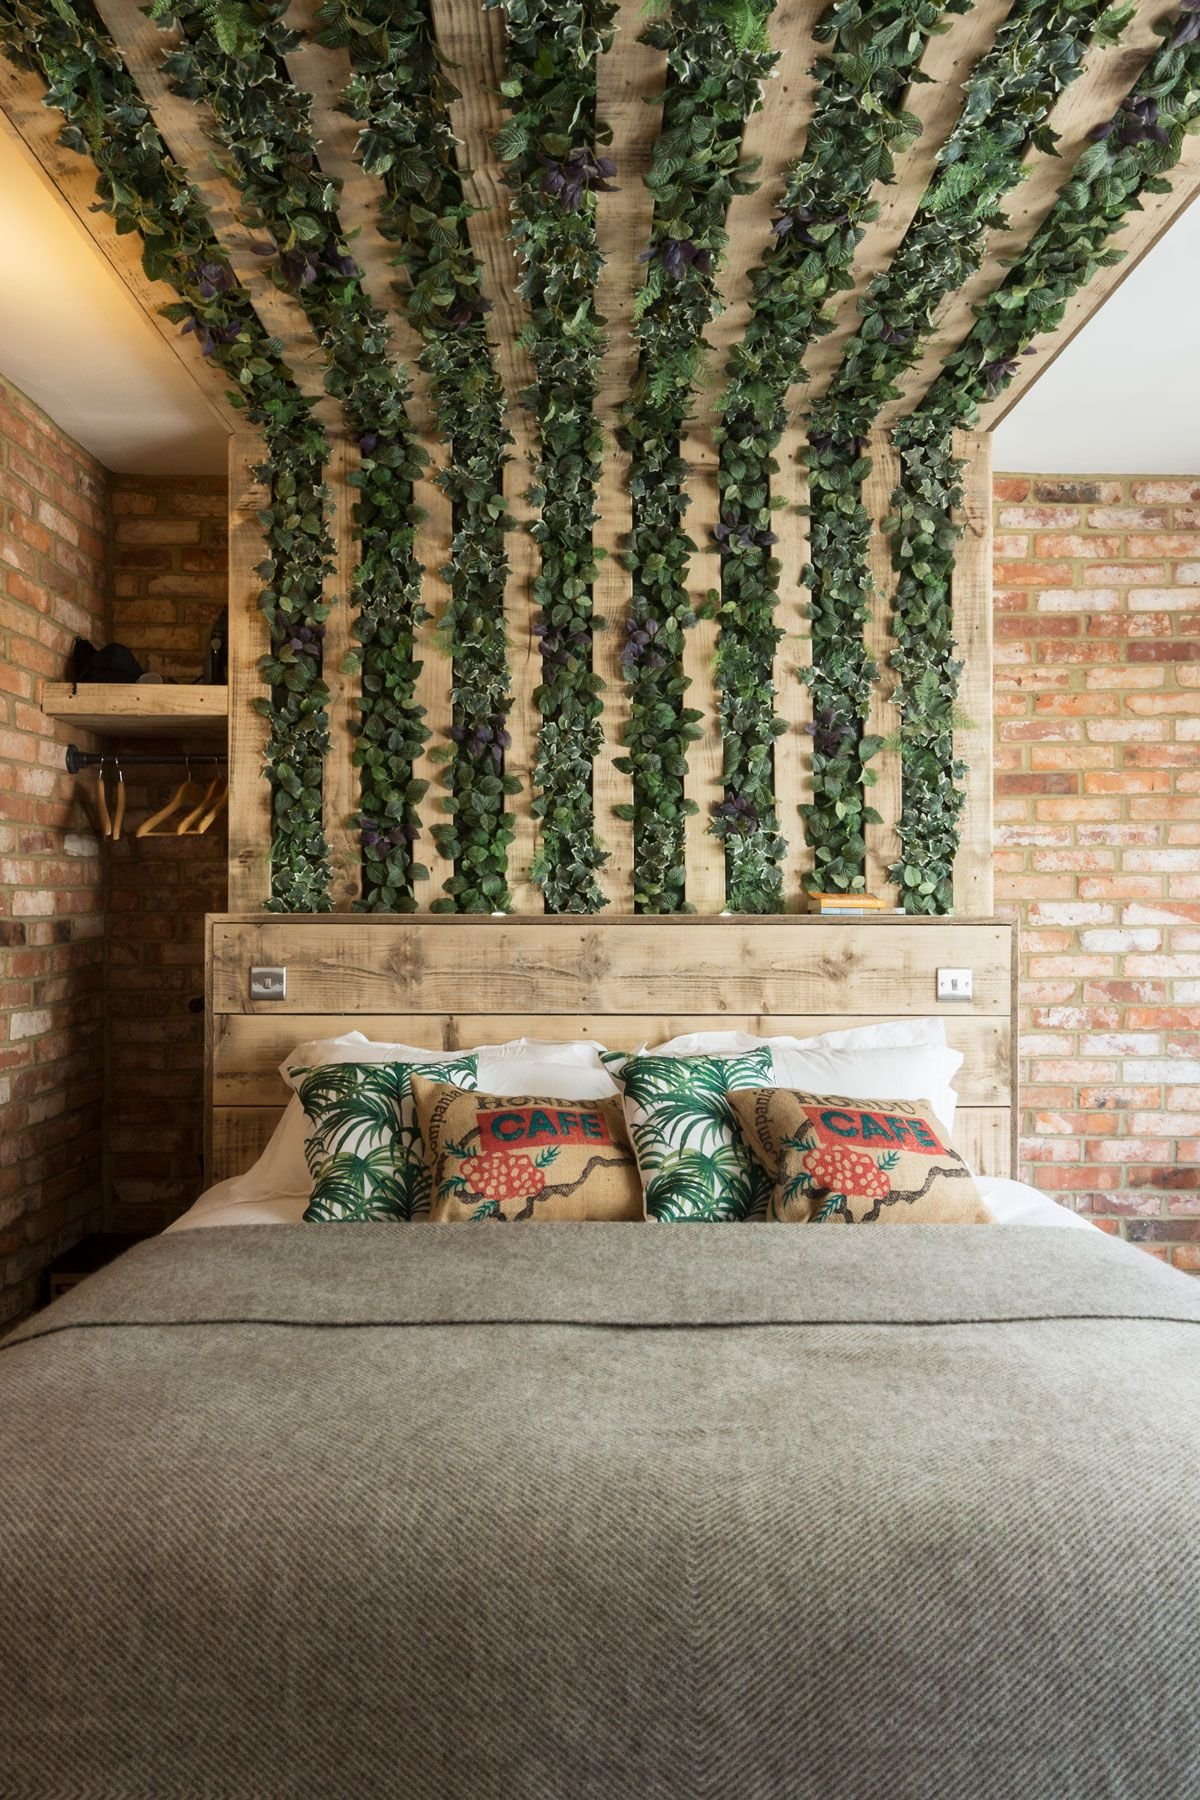 TECH-SAVVY TRAVELLERS WILL LOVE THIS BRIGHTON BOLTHOLE